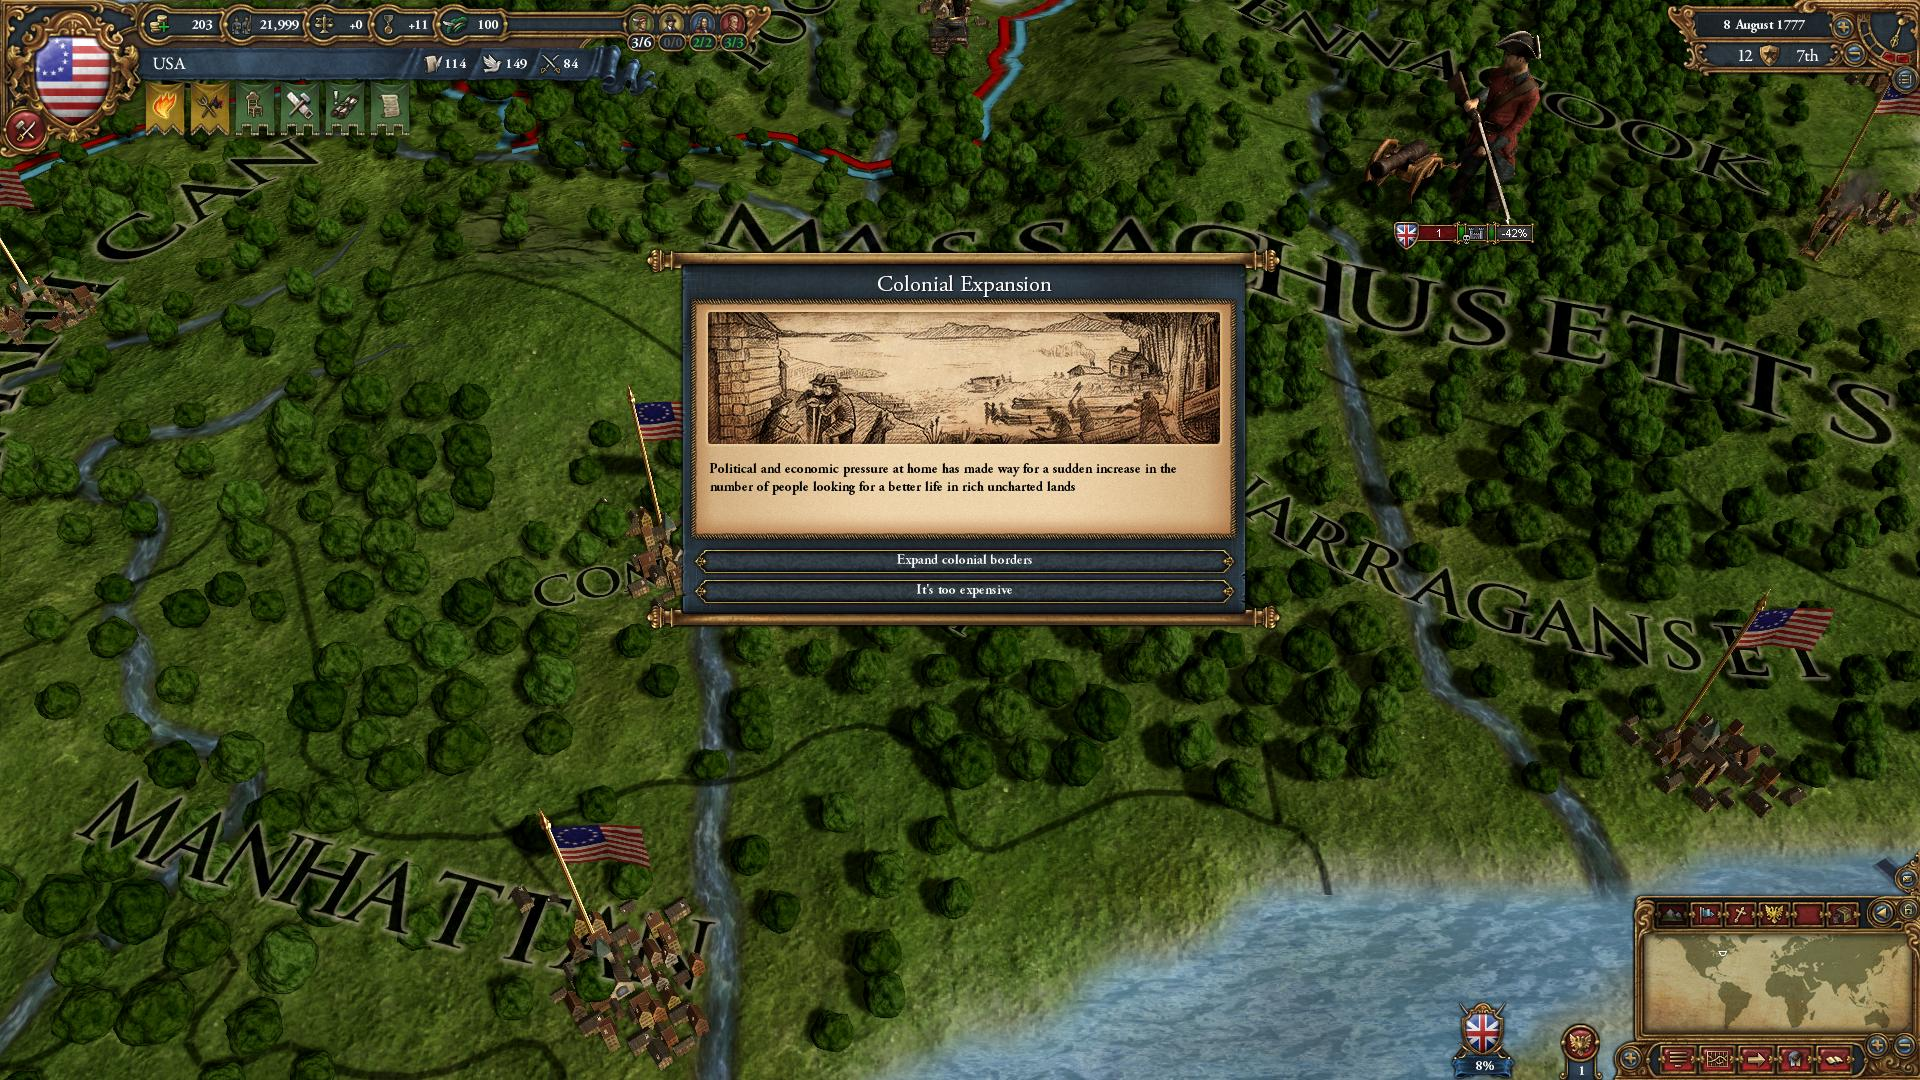 Europa Universalis IV: American Dream screenshot